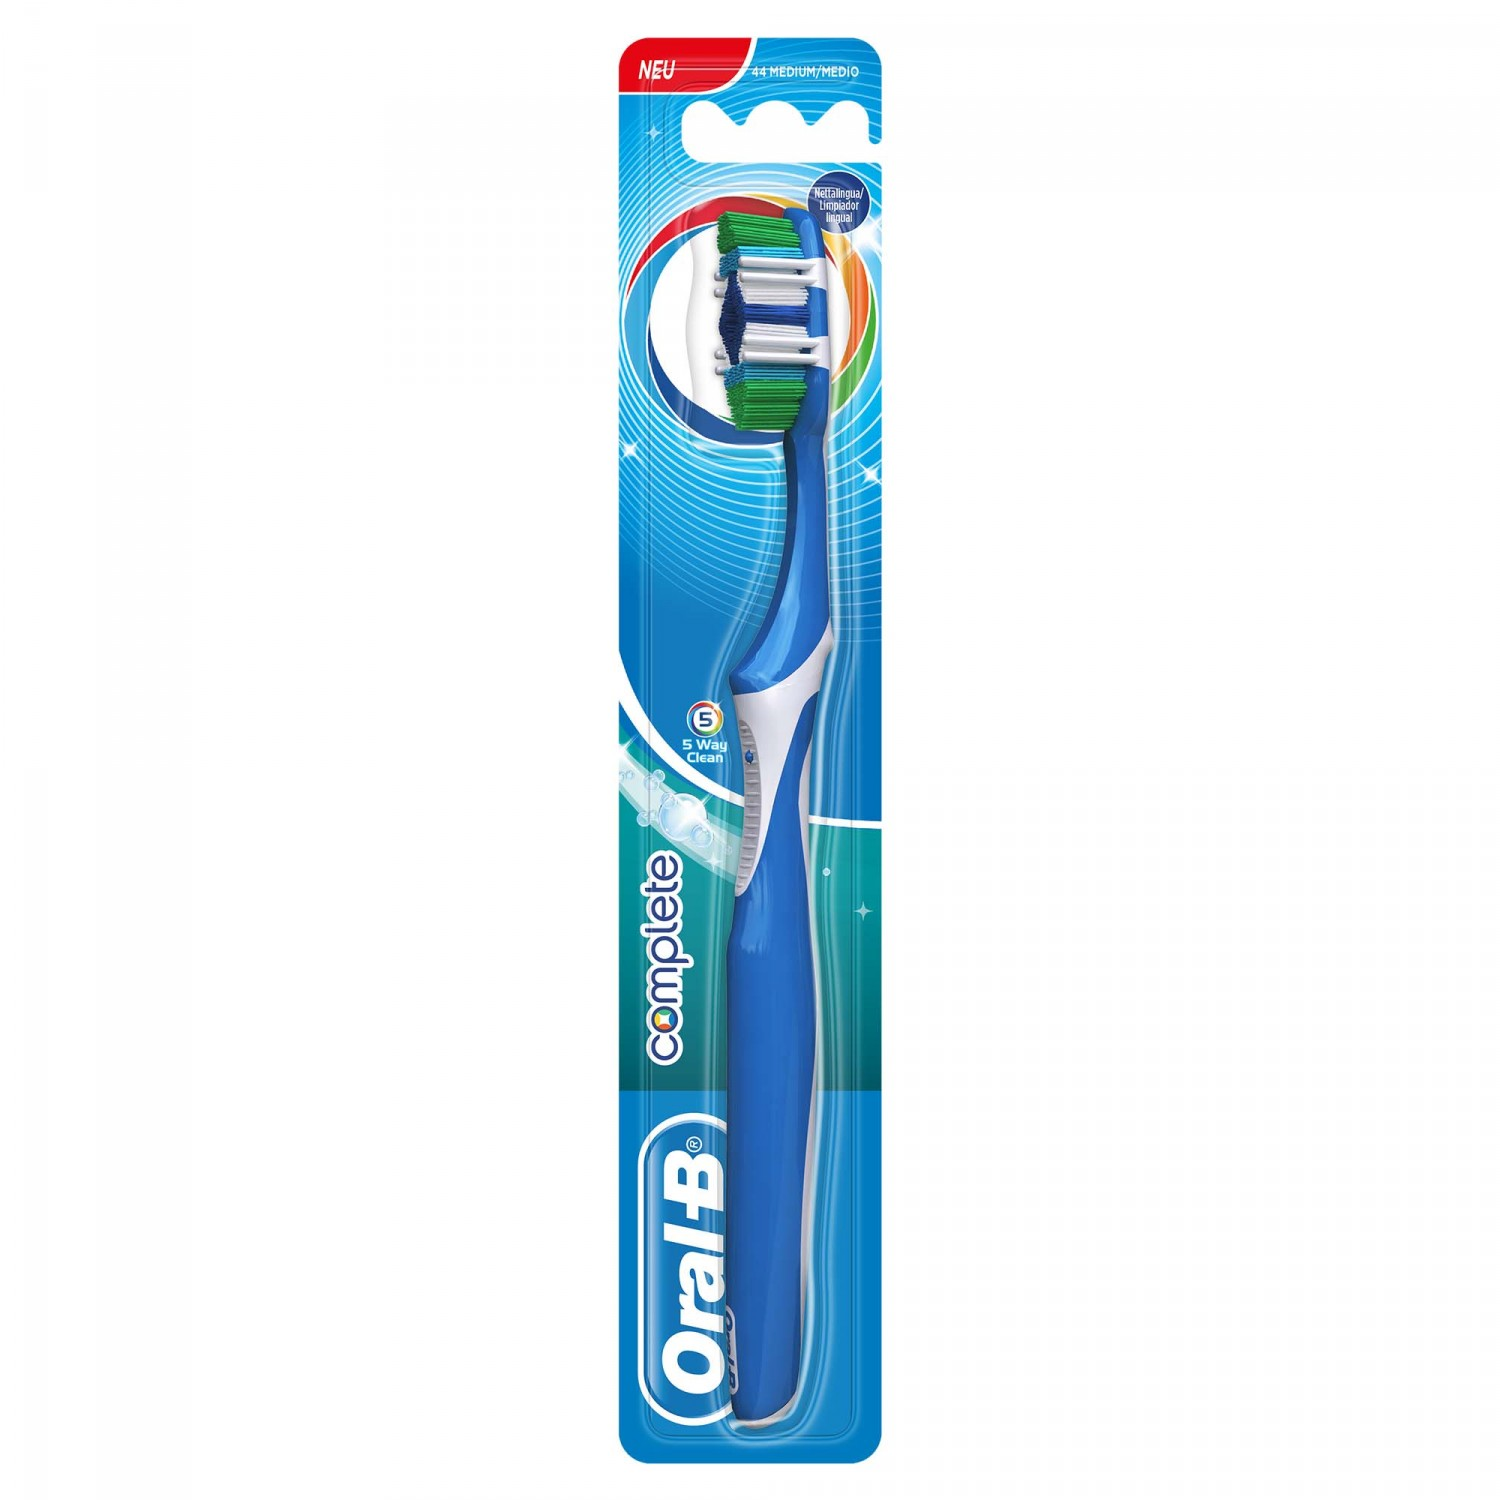 Oral B cepillo dental complete clean 5 ways blister blister